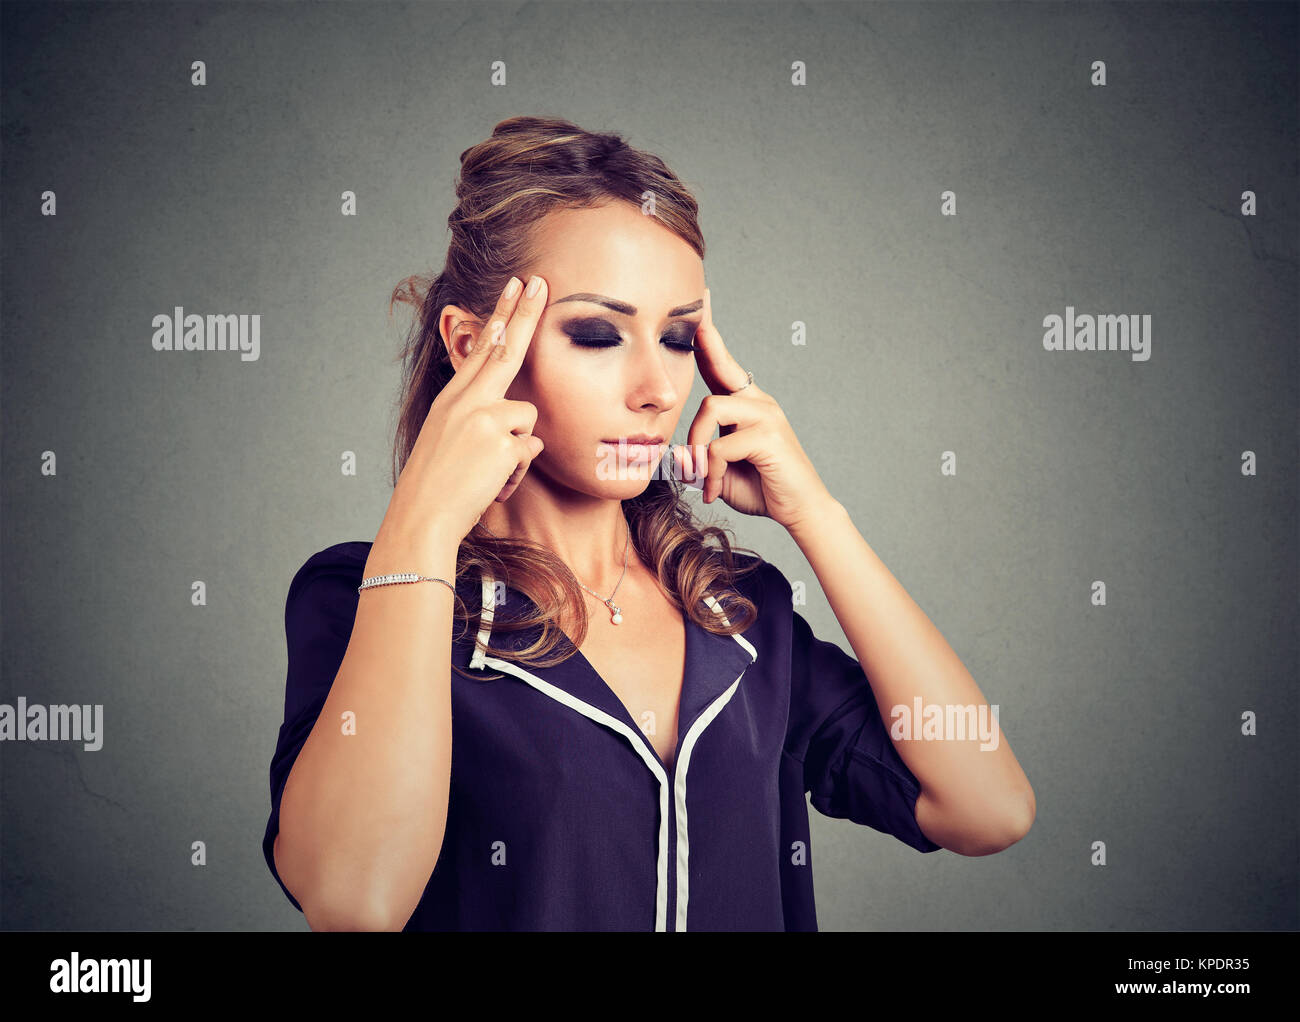 Young concentrated woman rubbing temples looking exhausted and overwhelmed. - Stock Image